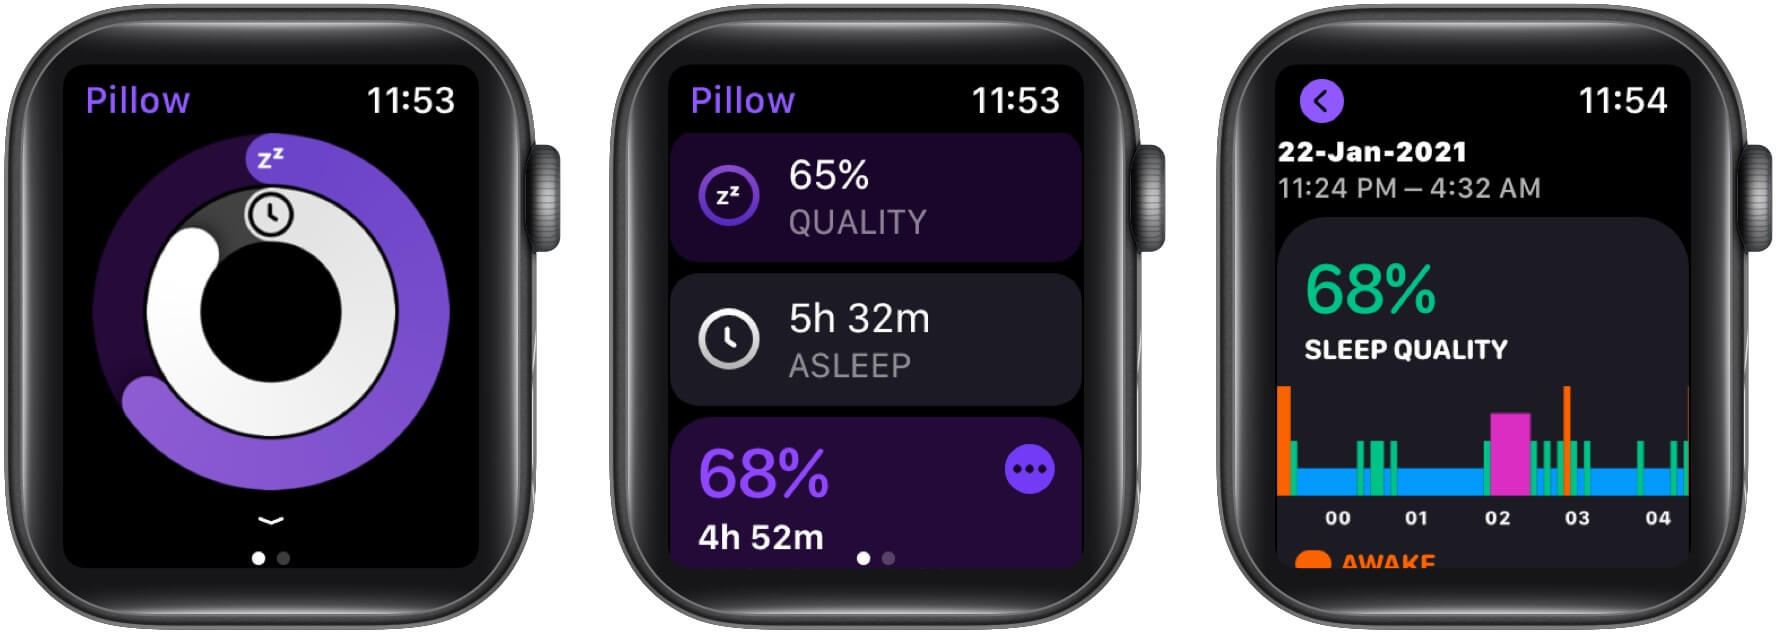 Check your daily sleep data from your Apple Watch